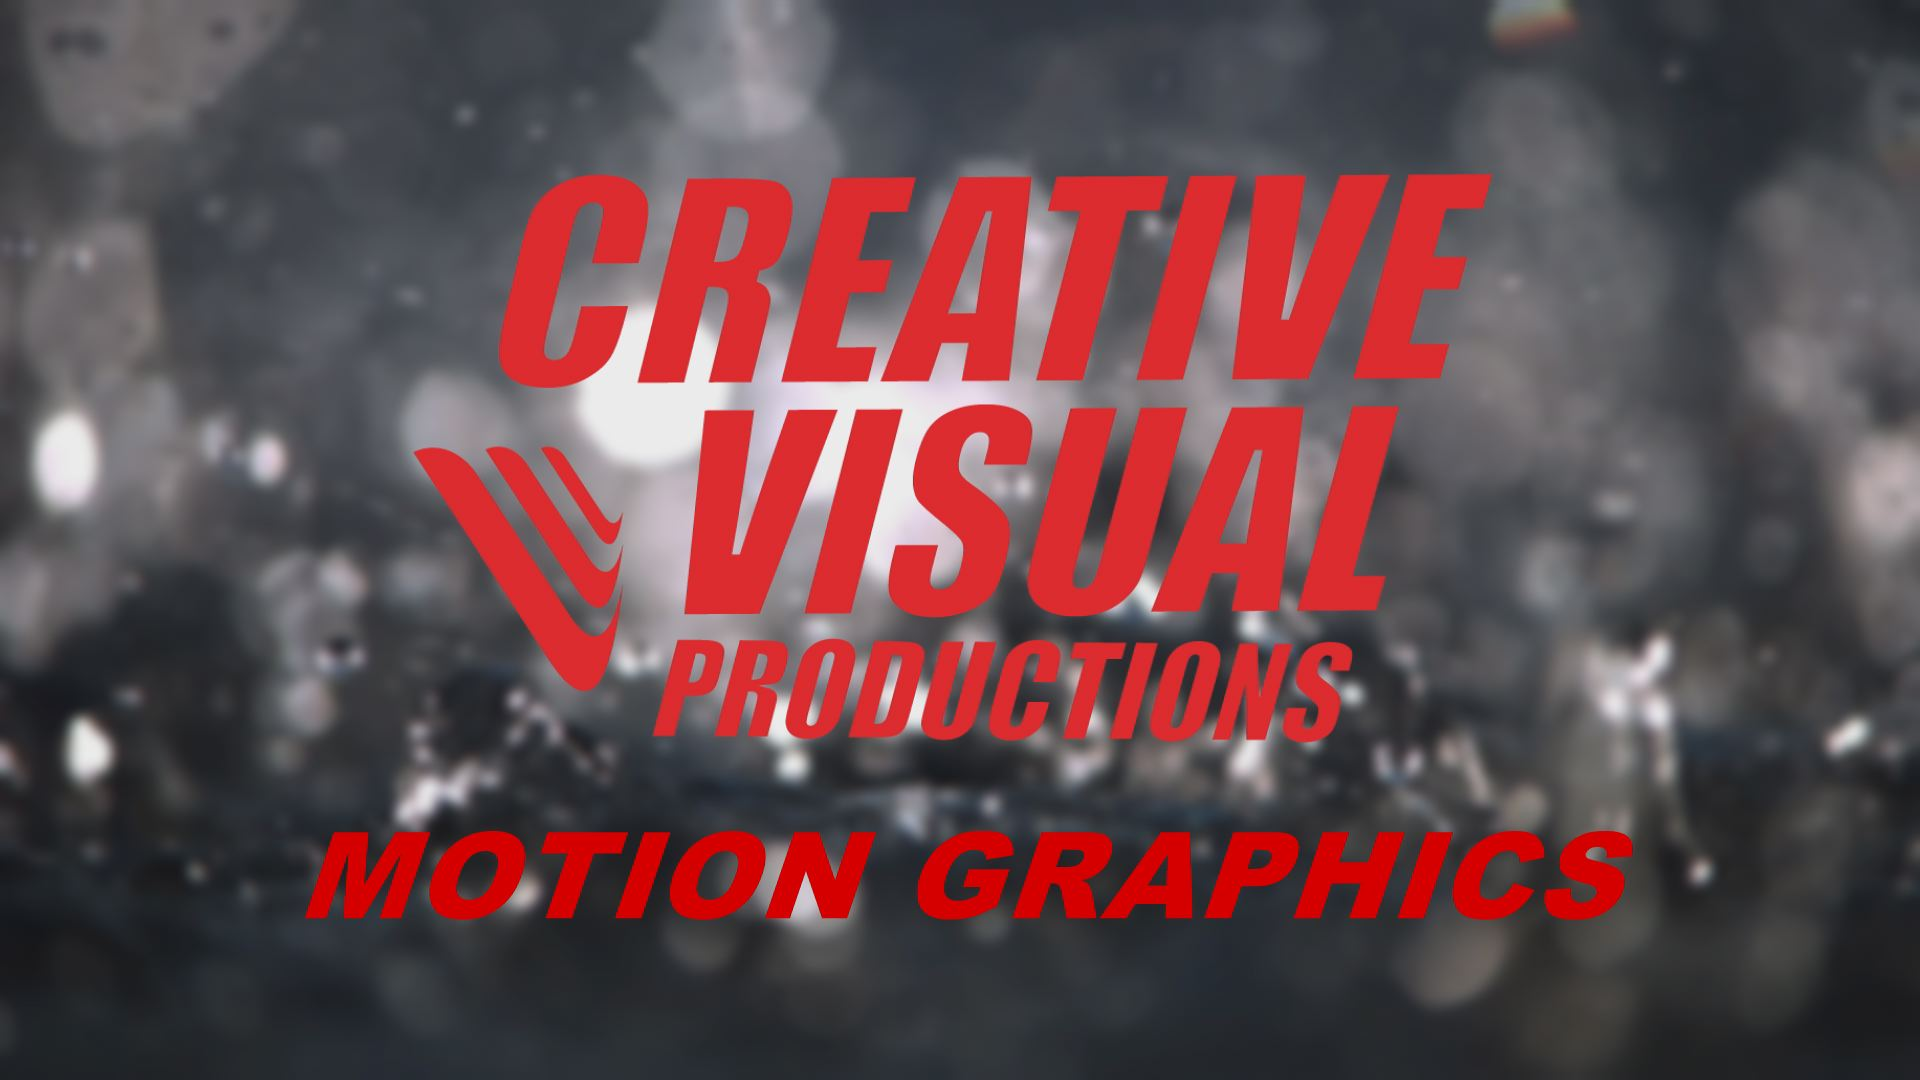 CVP Motion Graphics